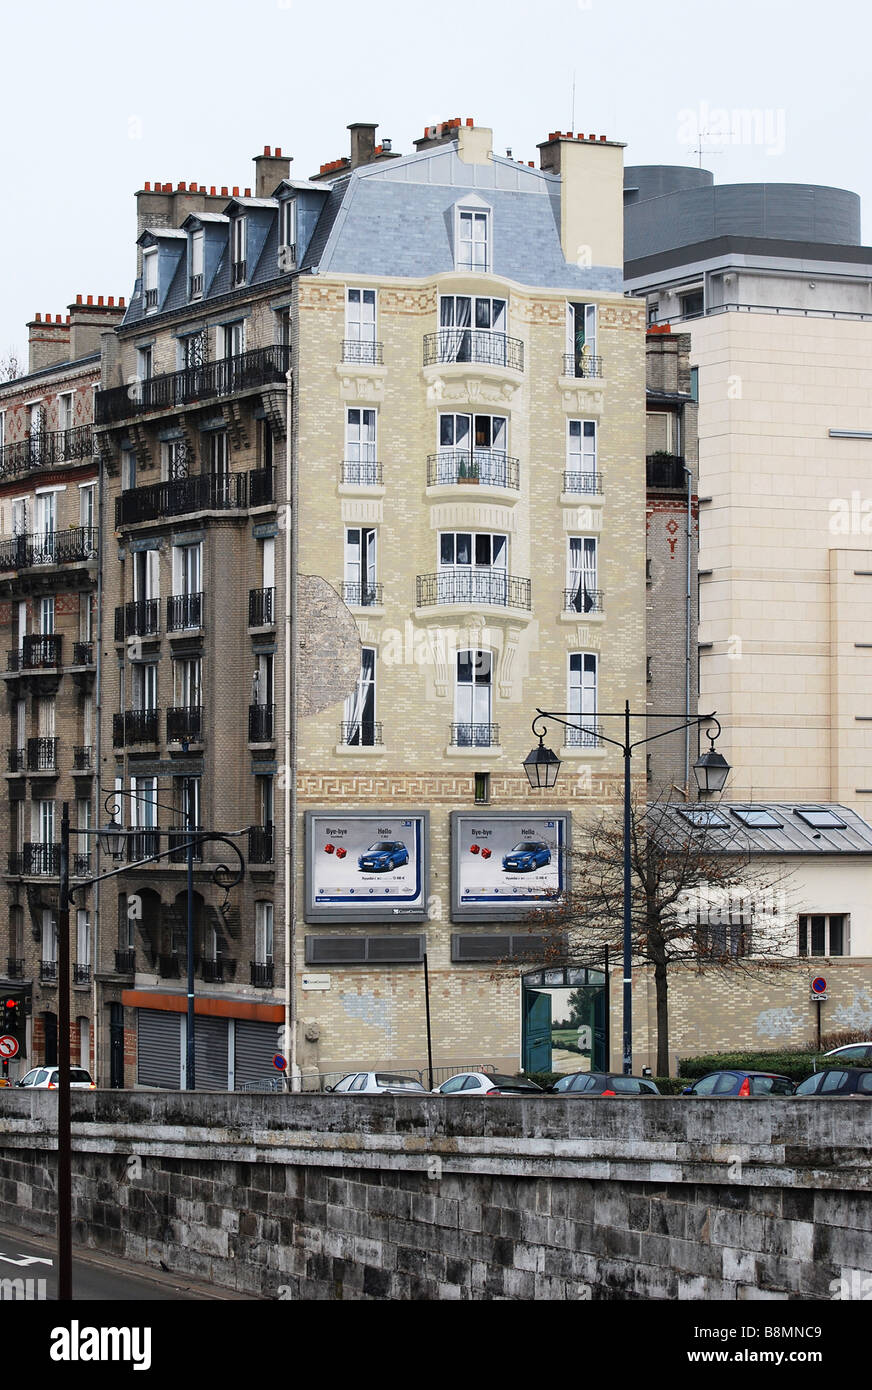 Ugly gable wall painted over paris number 2704 - Stock Image